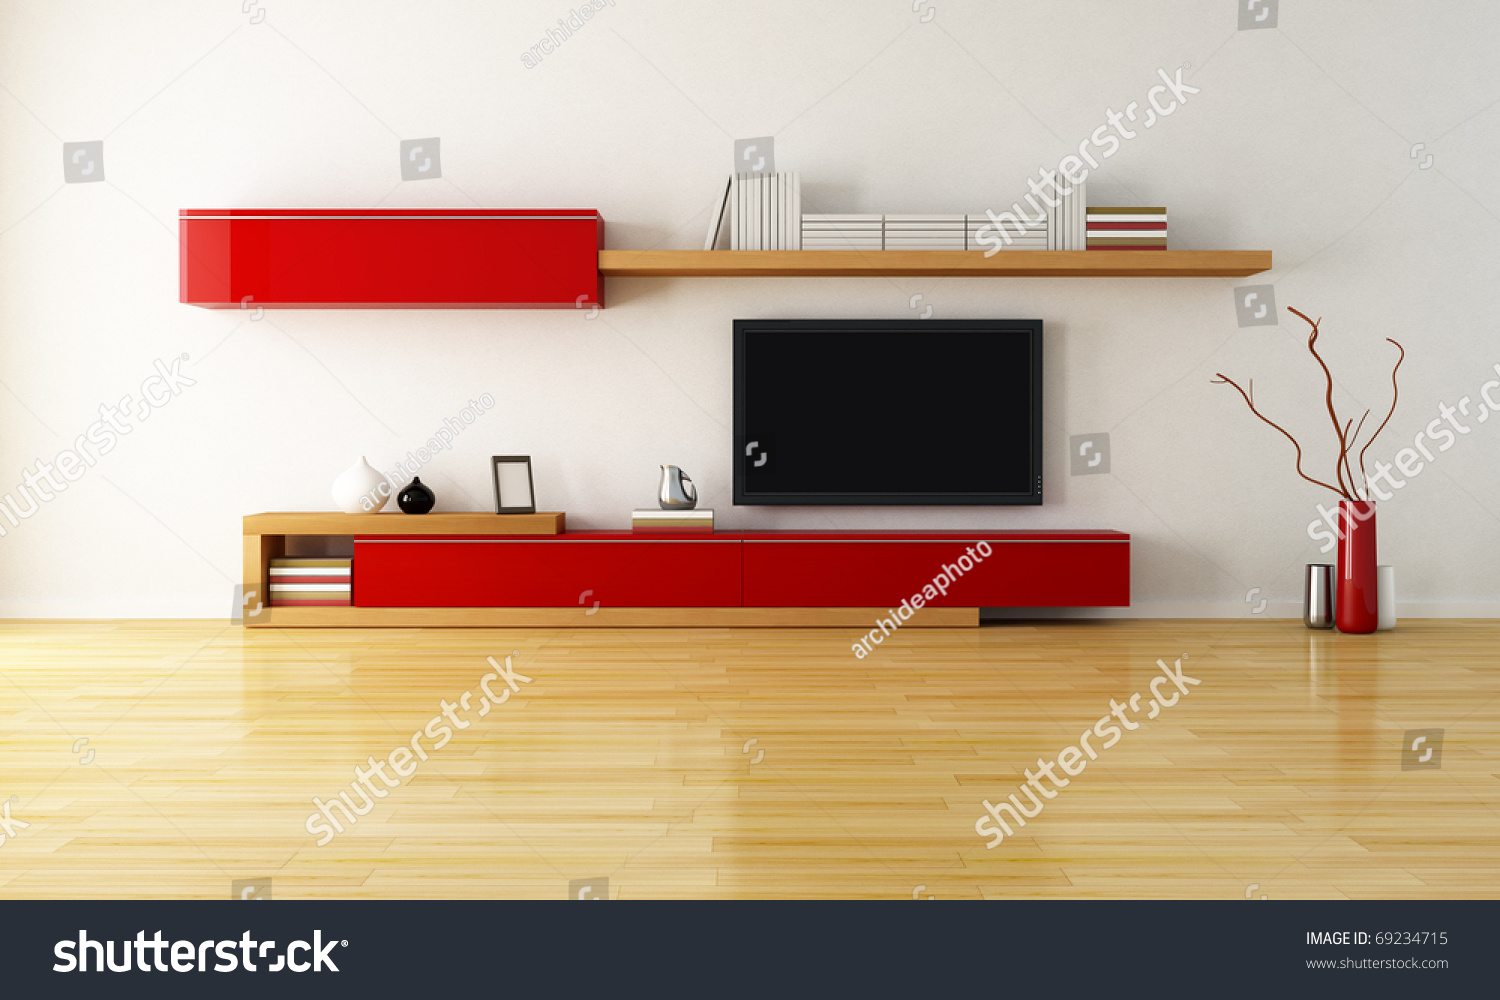 Lcd Tv Furniture For Living Room Minimalist Living Room Cabinet Shelves Lcd Stock Illustration